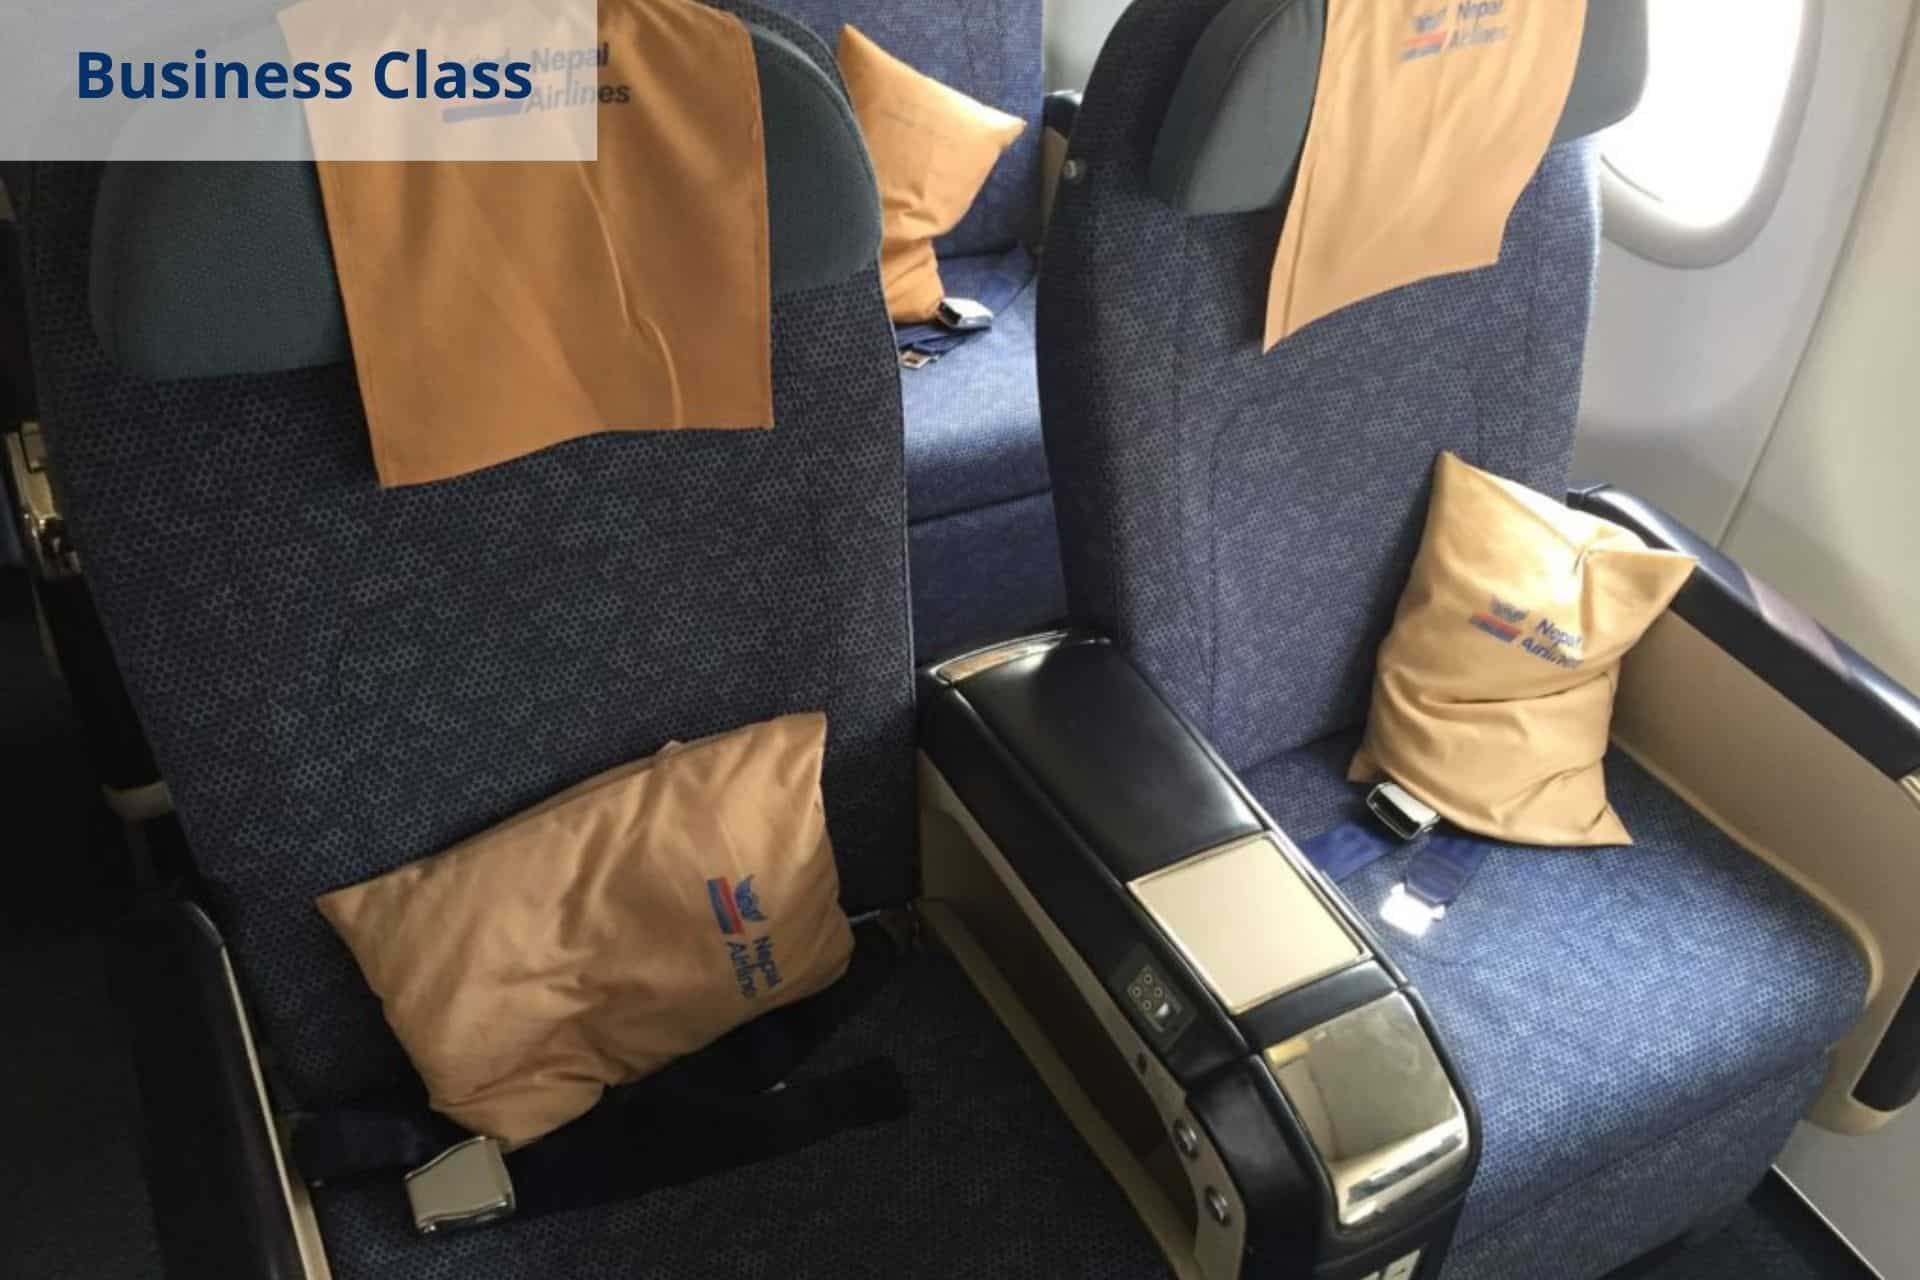 Nepal Airlines Business Class